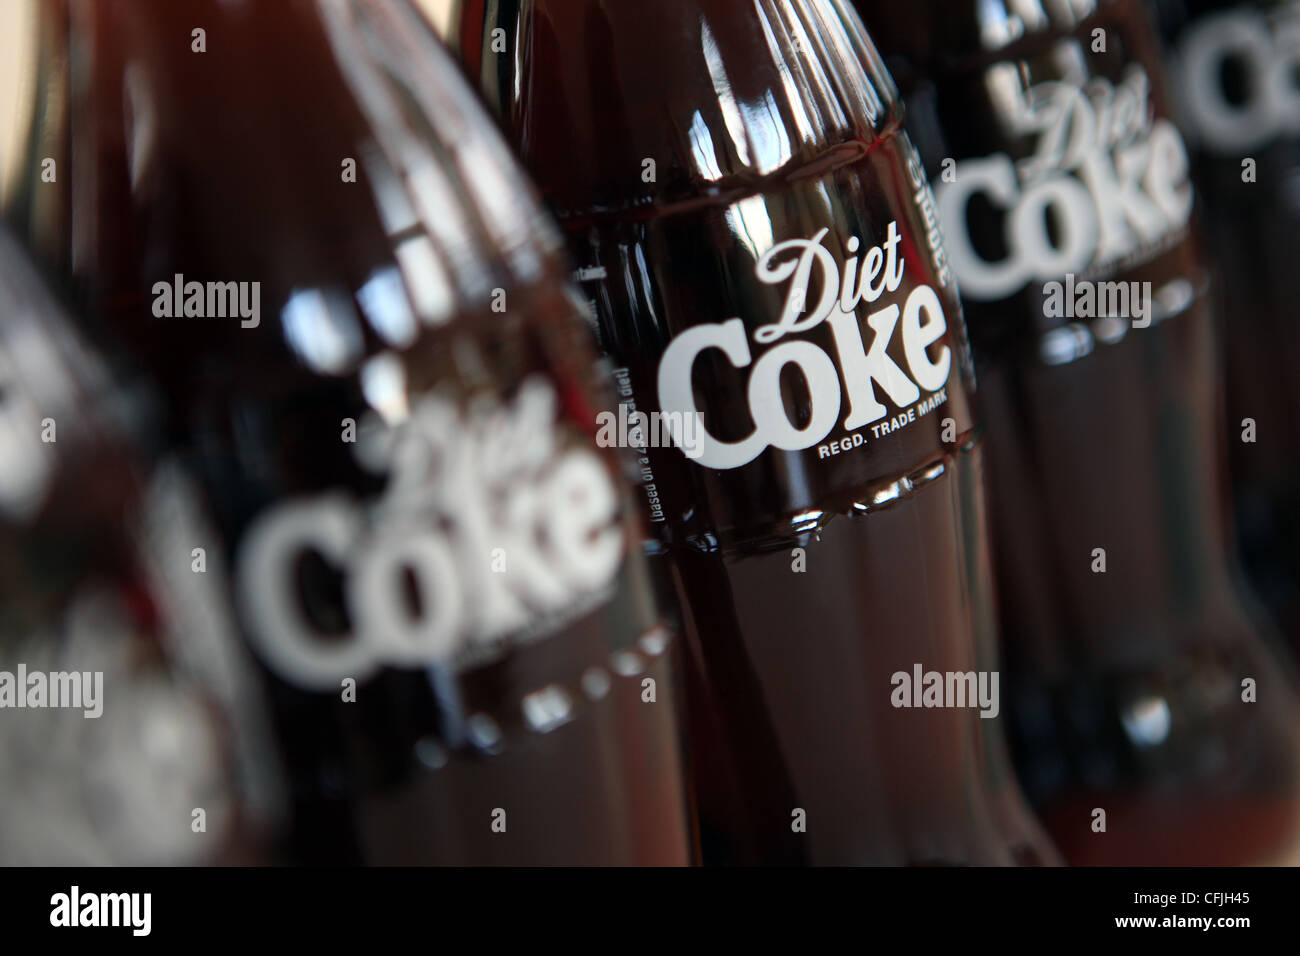 Diet Coke bottles in a row - Stock Image